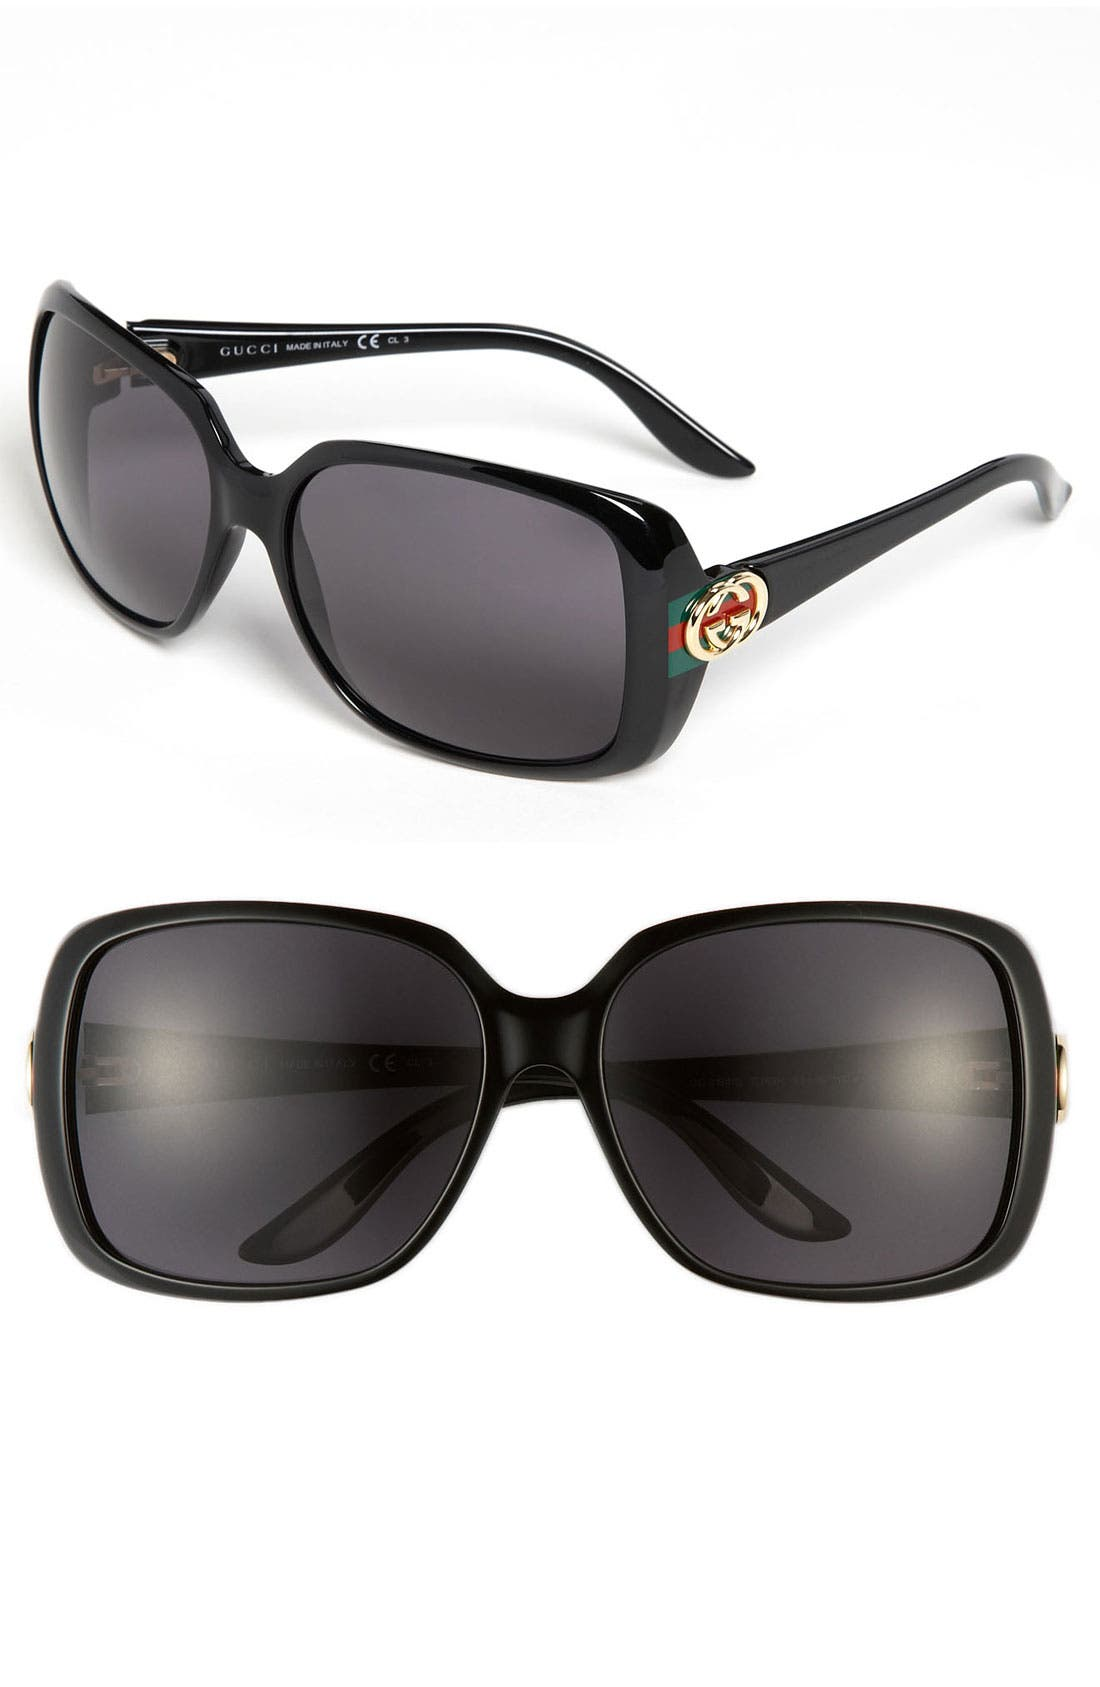 Alternate Image 1 Selected - Gucci 59mm Polarized Sunglasses